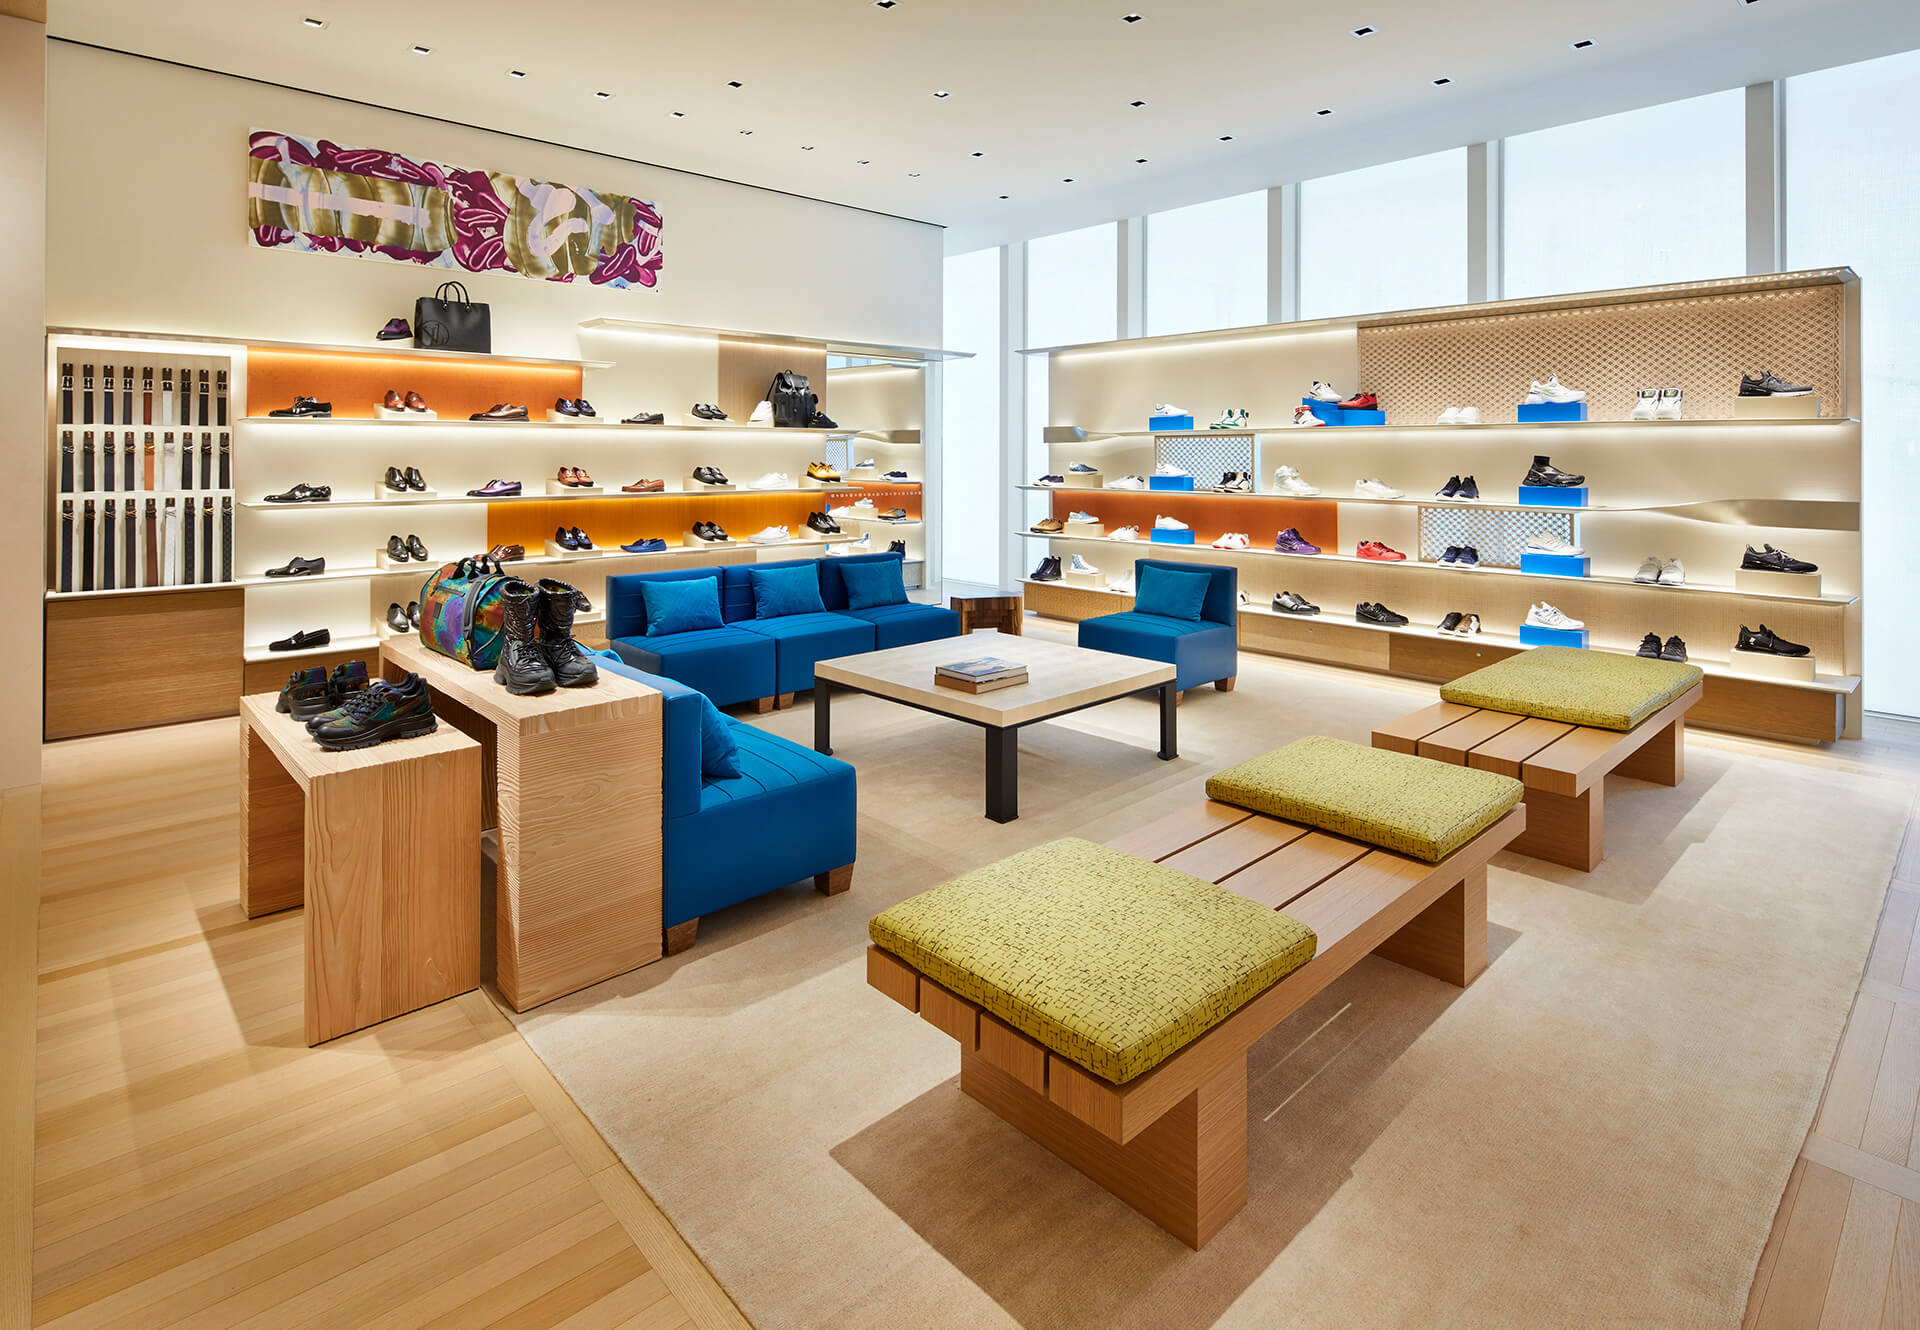 Traditional Japanese materials used in the interior space | Louis Vuitton Osaka | Jun Aoki | Peter Marino| STIRworld